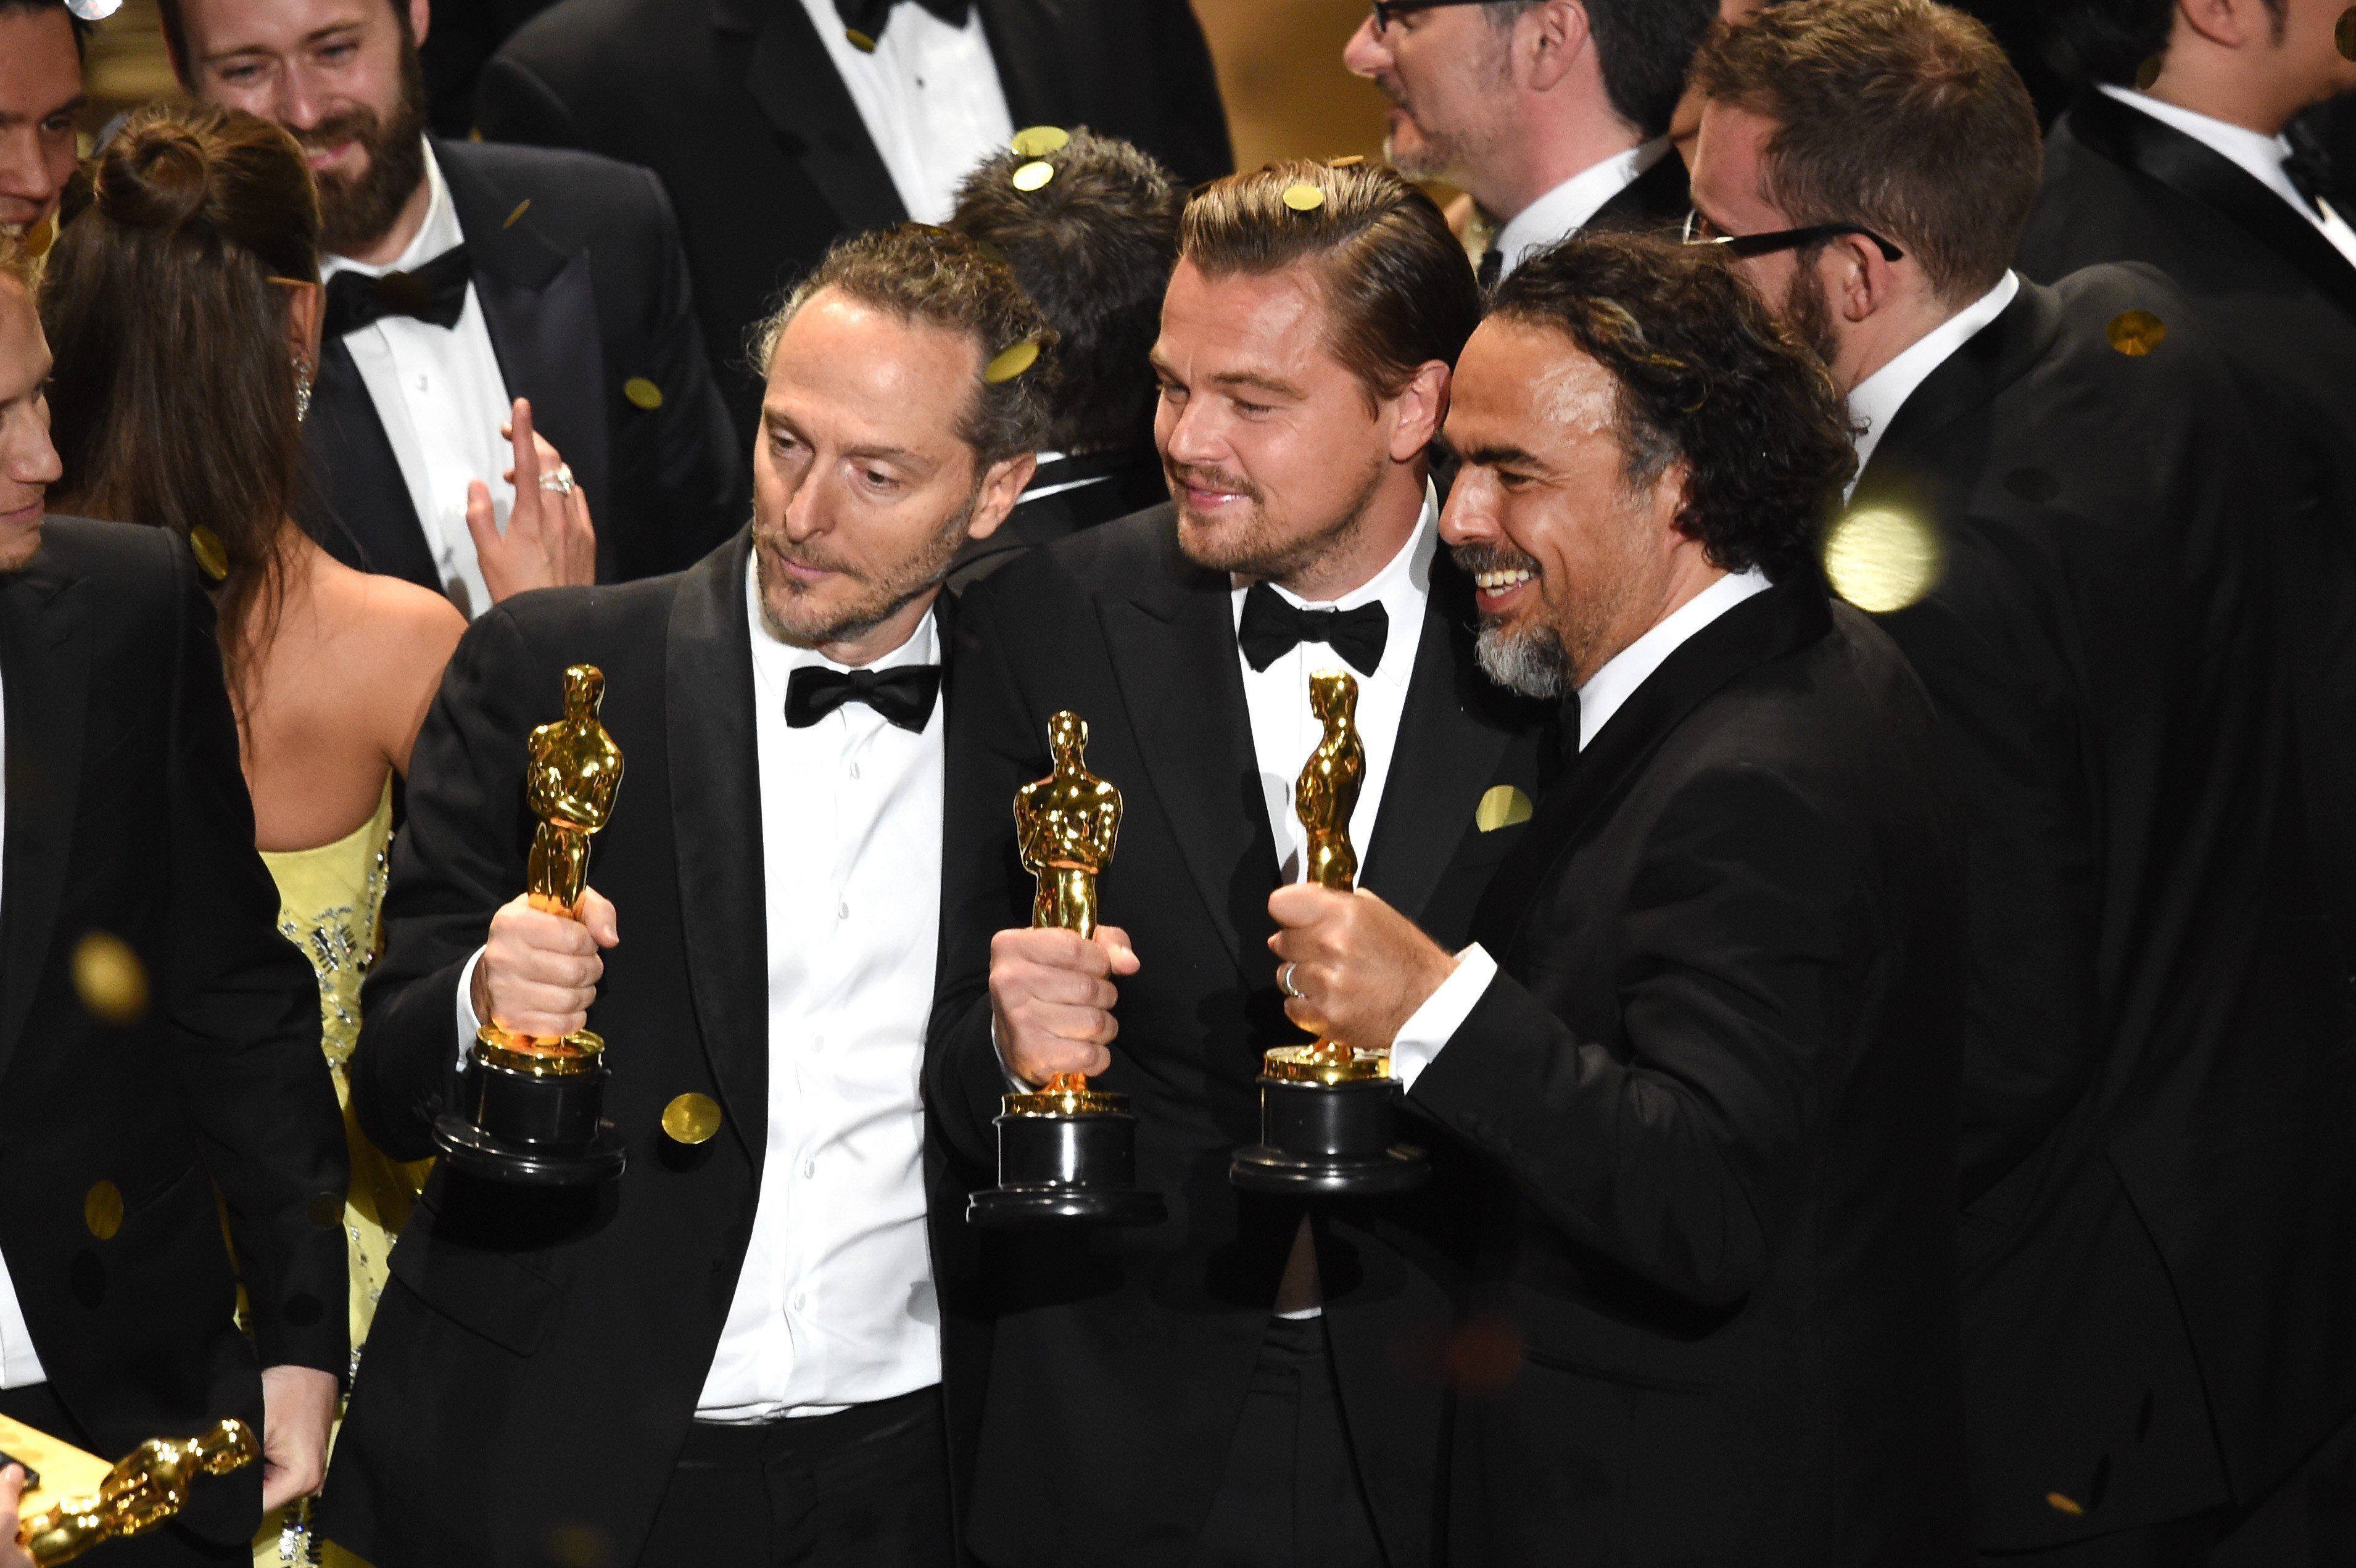 HOLLYWOOD, CA - FEBRUARY 28: (L-R) Cinematographer Emmanuel Lubezki, actor Leonardo DiCaprio and director Alejandro Gonzalez Inarritu, all winners for 'The Revenant,' pose onstage during the 88th Annual Academy Awards at the Dolby Theatre on February 28, 2016 in Hollywood, California. Kevin Winter/Getty Images/AFP ++ KEINE NUTZUNG IN TAGESZEITUNGS-BEILAGEN! NUR REDAKTIONELLE NUTZUNG IN TAGESZEITUNGEN, TAGESAKTUELLER TV-BERICHTERSTATTUNG (AKTUELLER DIENST) UND DIGITALEN AUSSPIELKAN€LEN (WEBSITES/APPS) IM UMFANG DER NUTZUNGSVEREINBARUNG. S€MTLICHE ANDERE NUTZUNGEN SIND NICHT GESTATTET.++